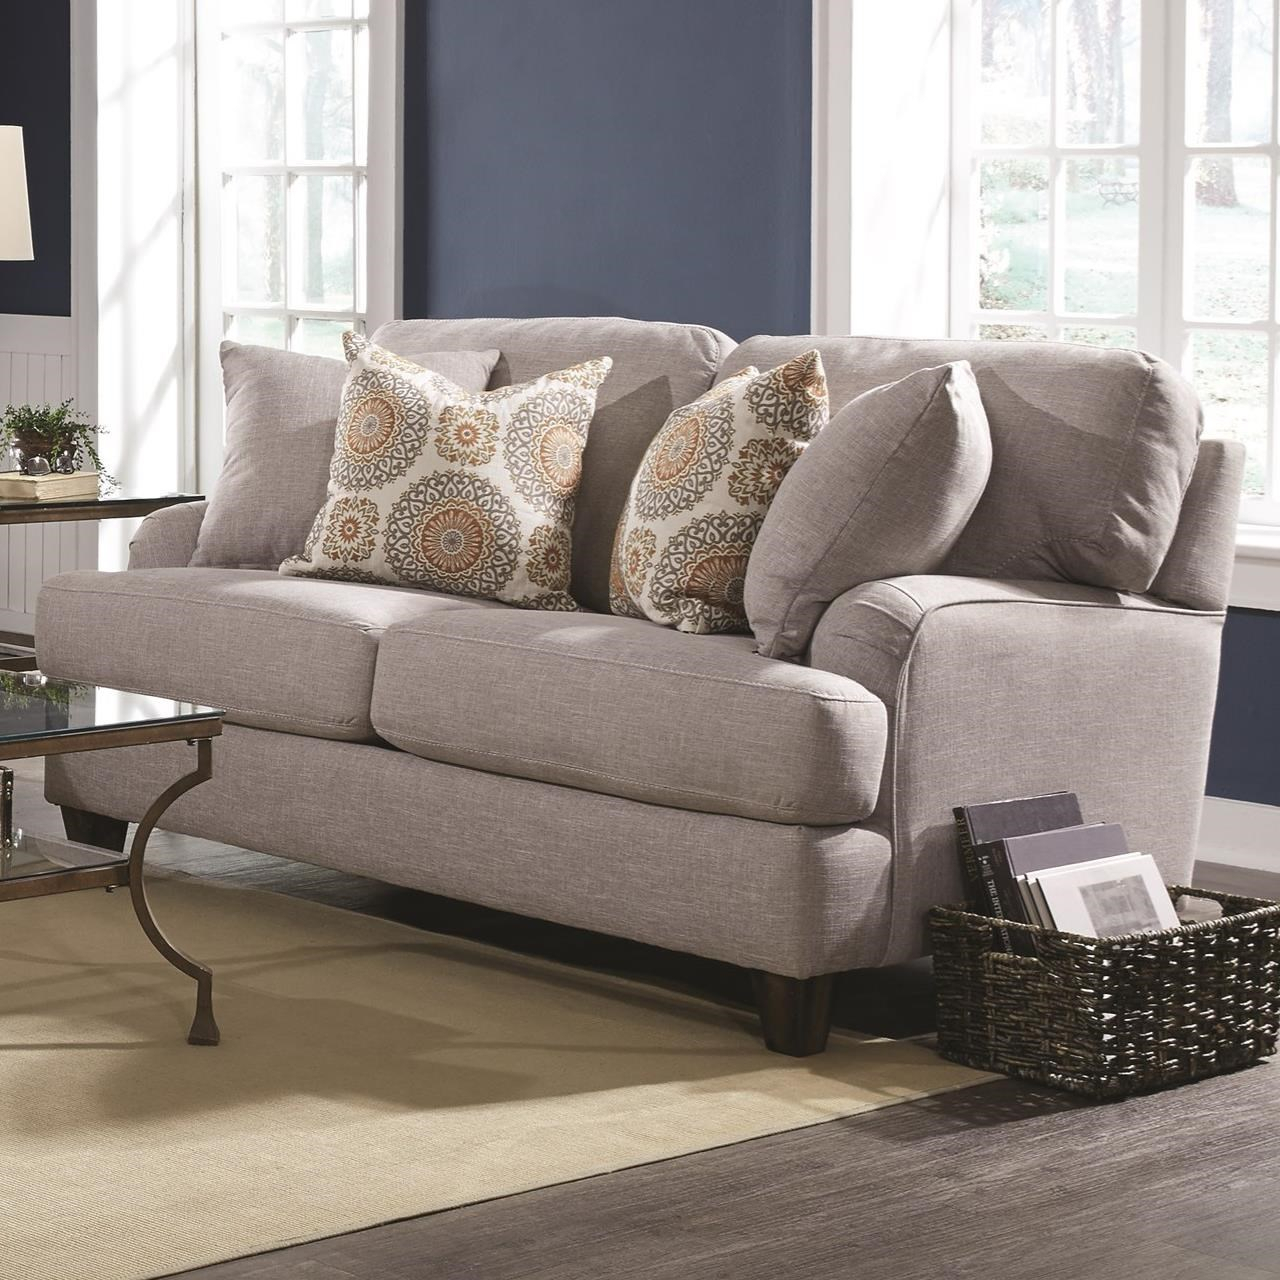 Franklin Carmel Loveseat With Classic Cottage Style Pertaining To Cottage Style Sofas And Chairs (View 2 of 15)